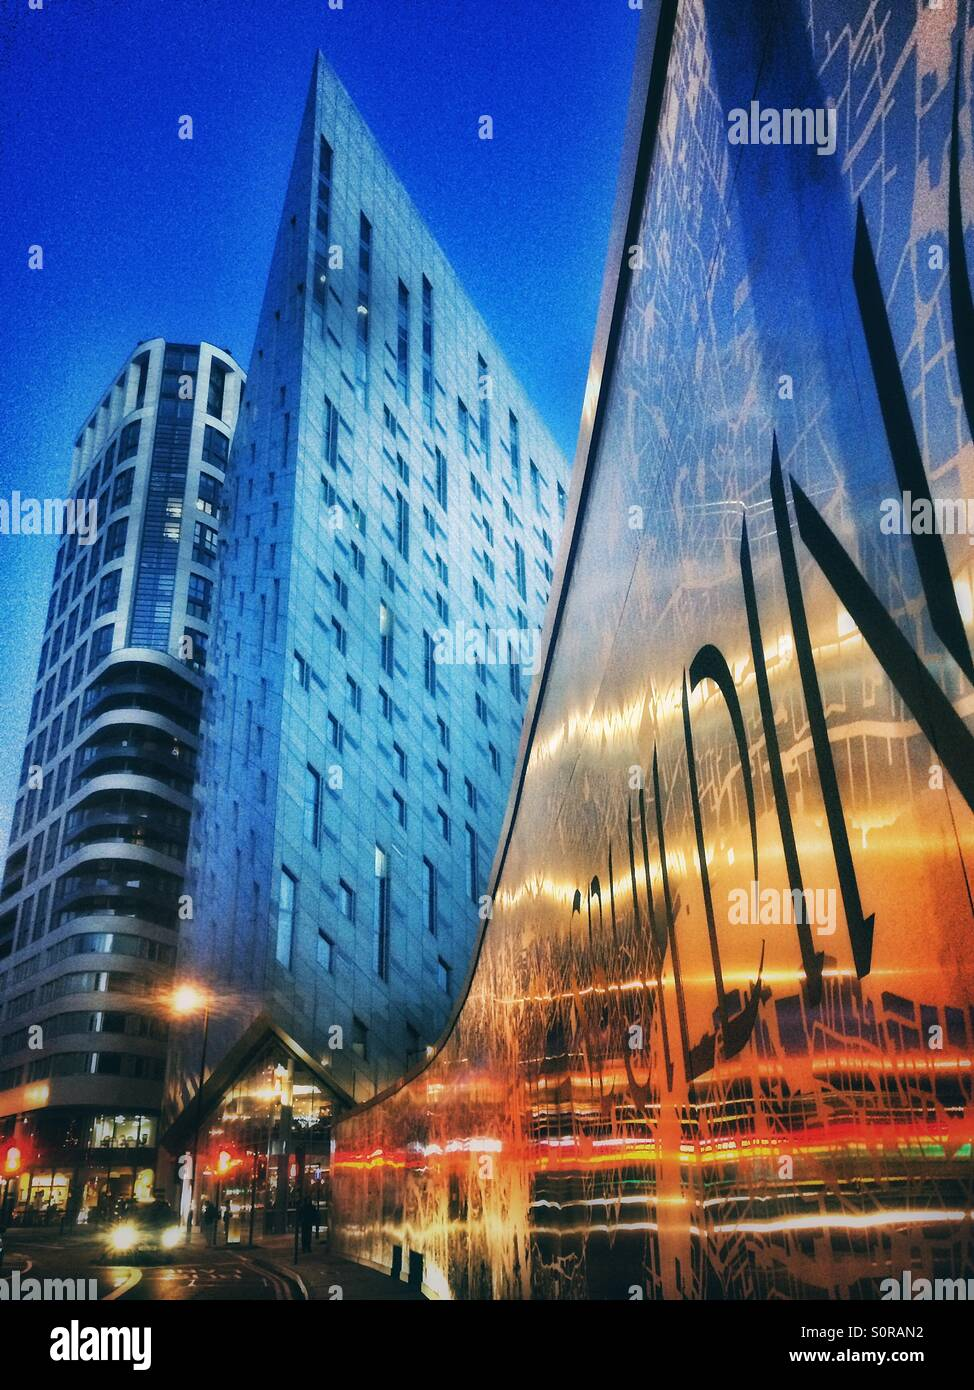 Montcalm Shoreditch: The Montcalm Building In Old Street, London Stock Photo